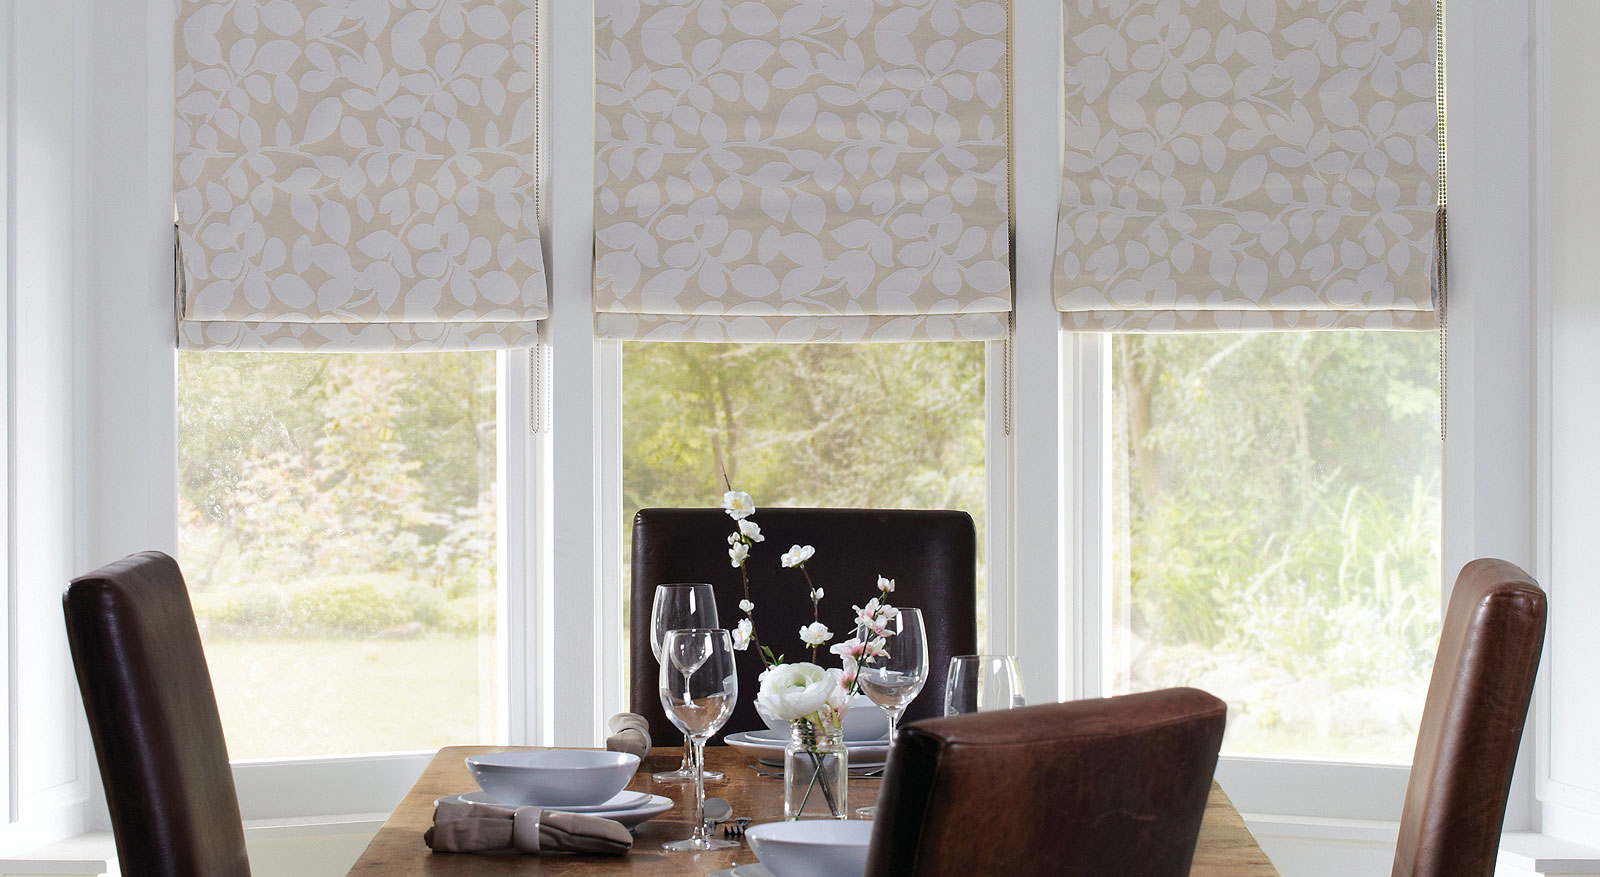 Roman Blinds Curtains Installation Of Blinds Amp Curtains